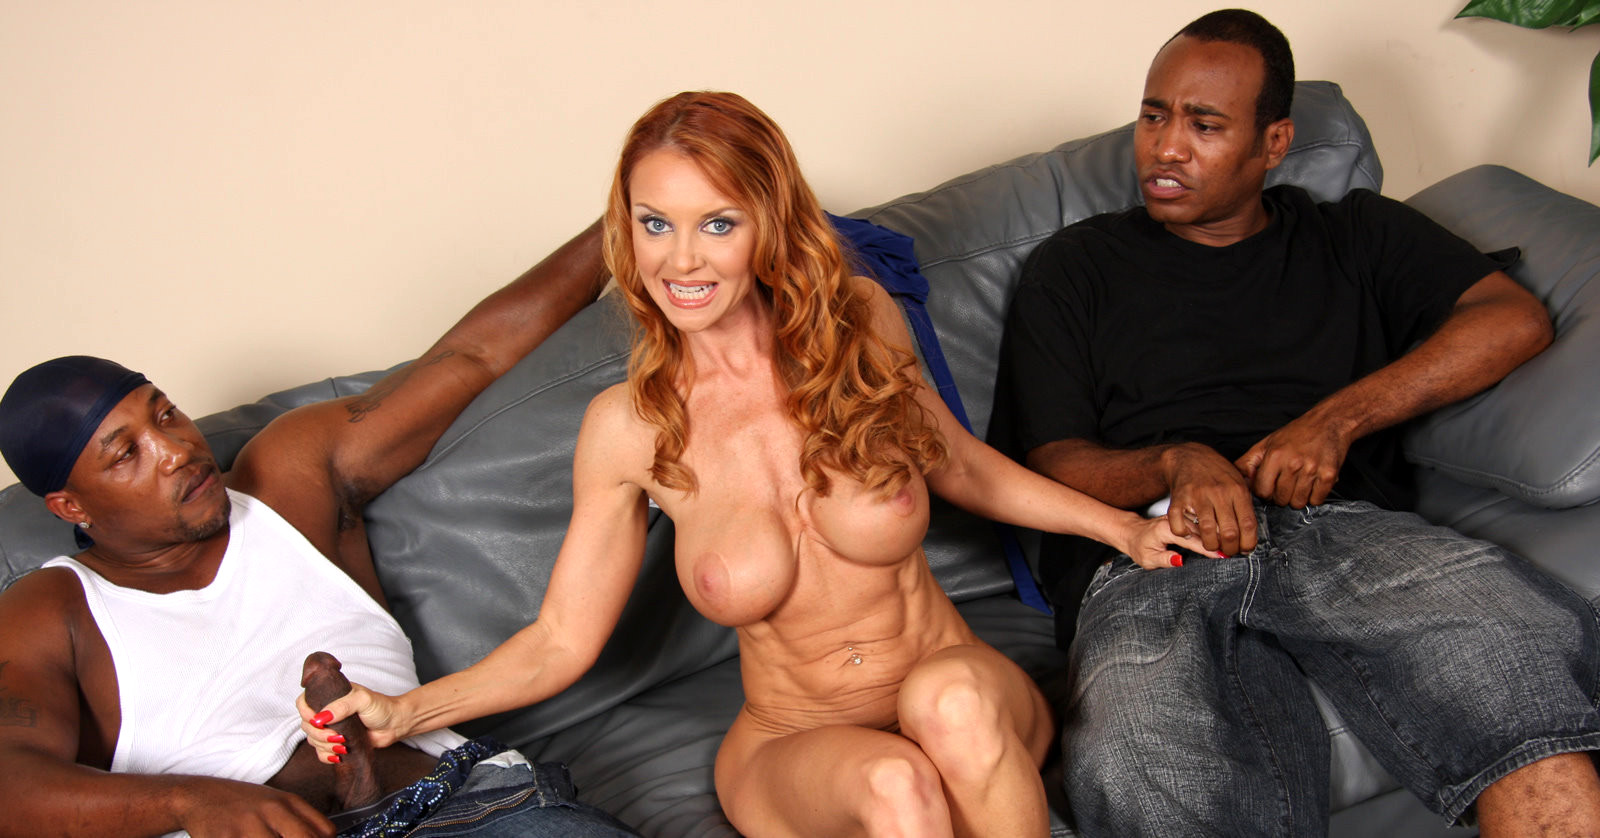 black-on-southern-mom-sex-fucking-polish-girl